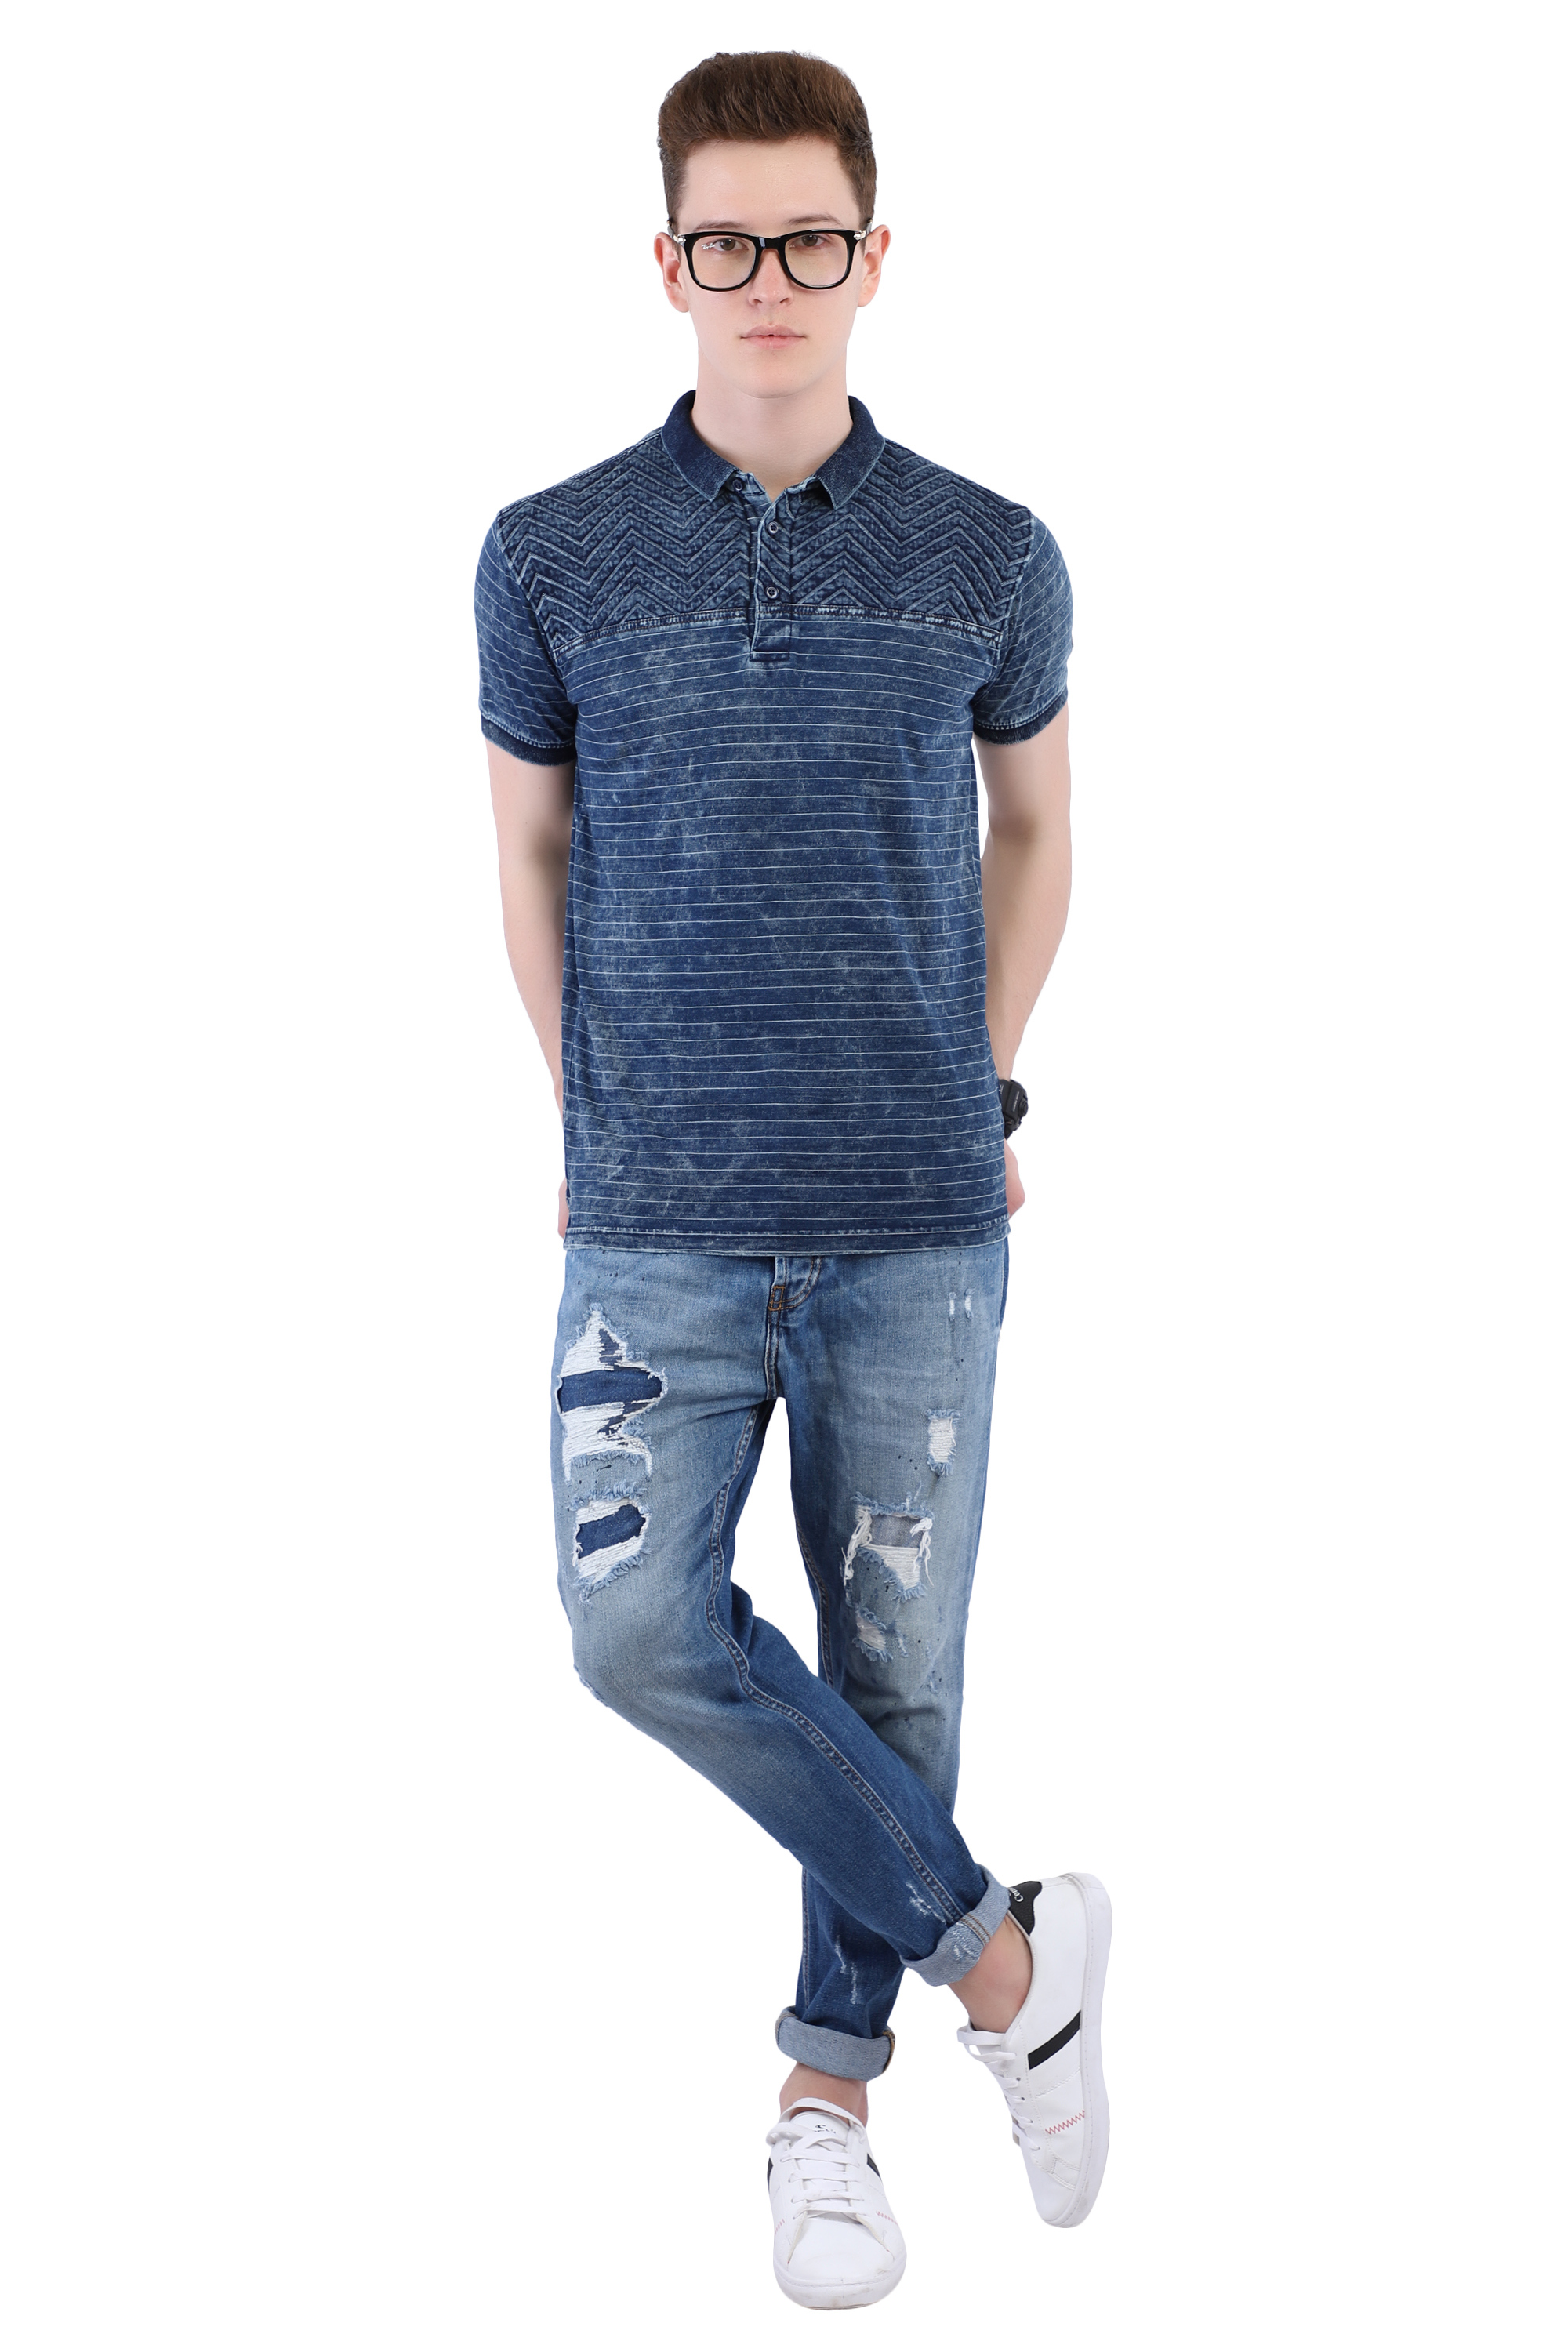 Blue Collared T-shirt (Pattern) Image